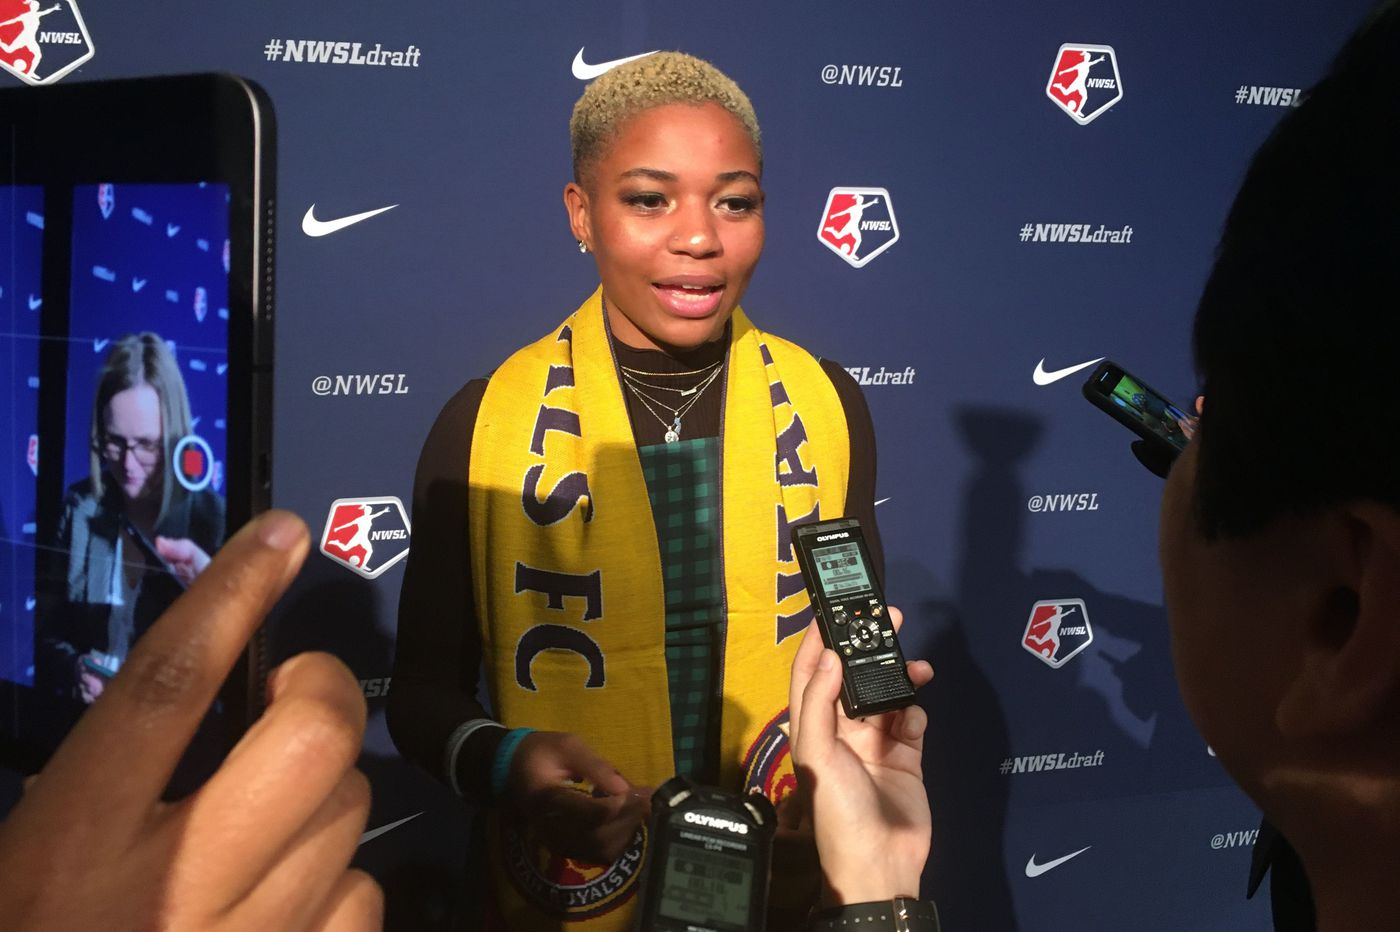 Sicklerville's Tziarra King a first-round NWSL draft pick by Utah Royals